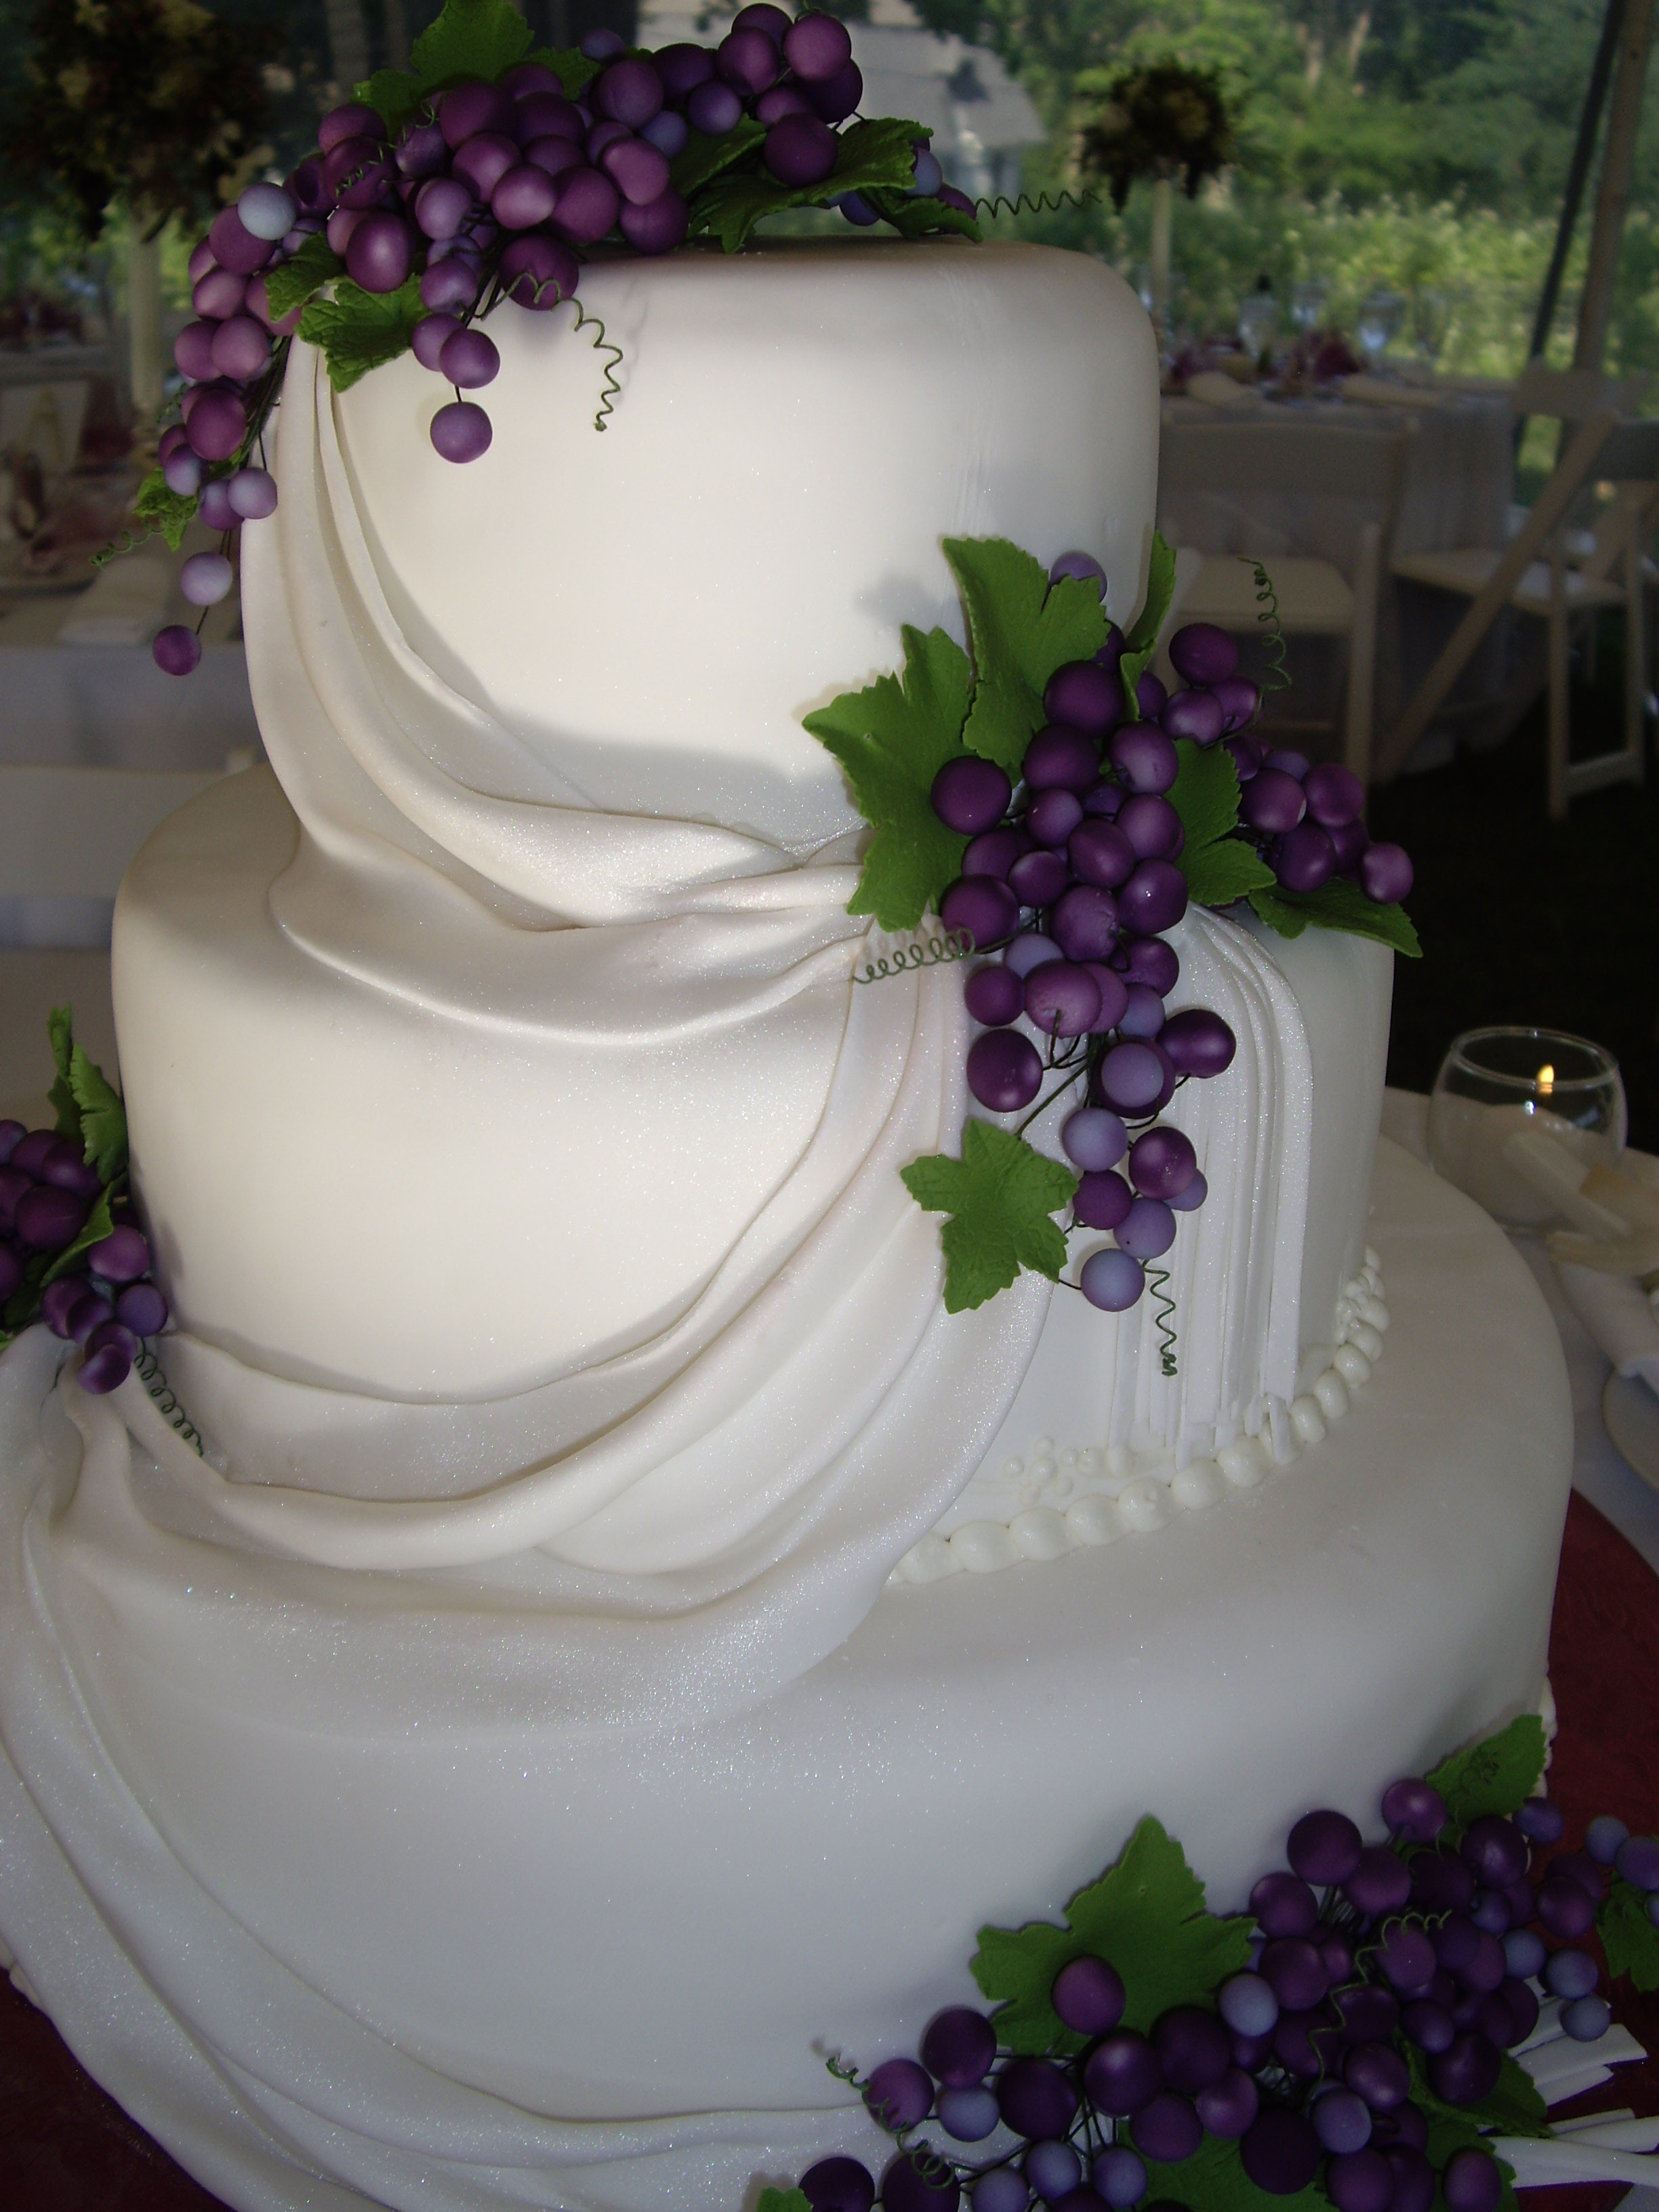 Wedding Cakes Gallery  The Cake Gallery WEDDING CAKES Our unique style and